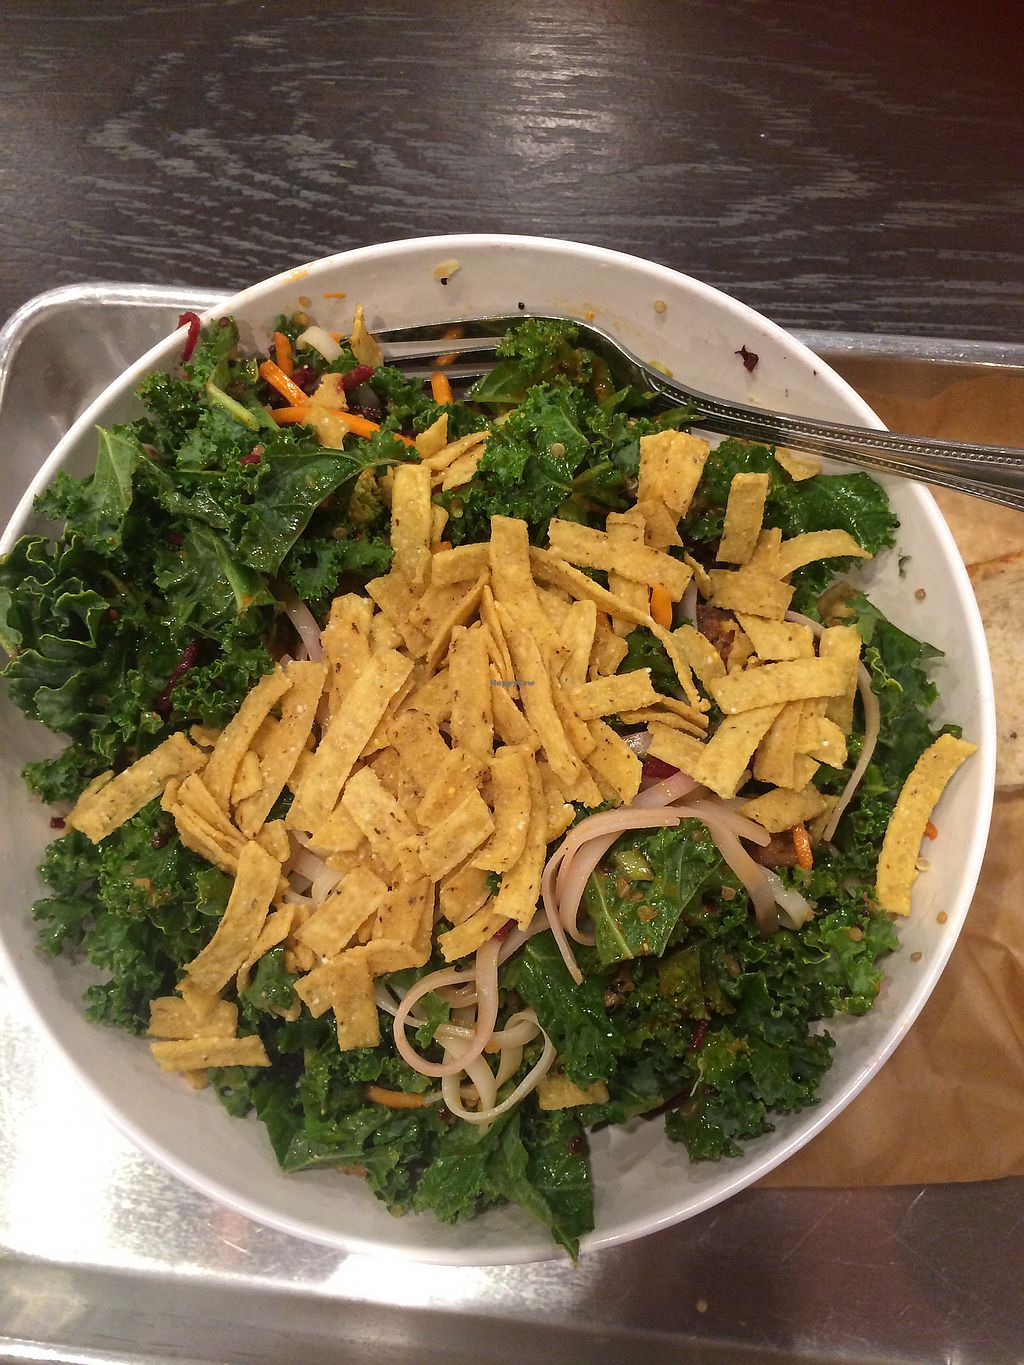 "Photo of CoreLife Eatery  by <a href=""/members/profile/fruitiJulie"">fruitiJulie</a> <br/>Vegan grain bowl mostly kale <br/> October 24, 2017  - <a href='/contact/abuse/image/90655/318364'>Report</a>"